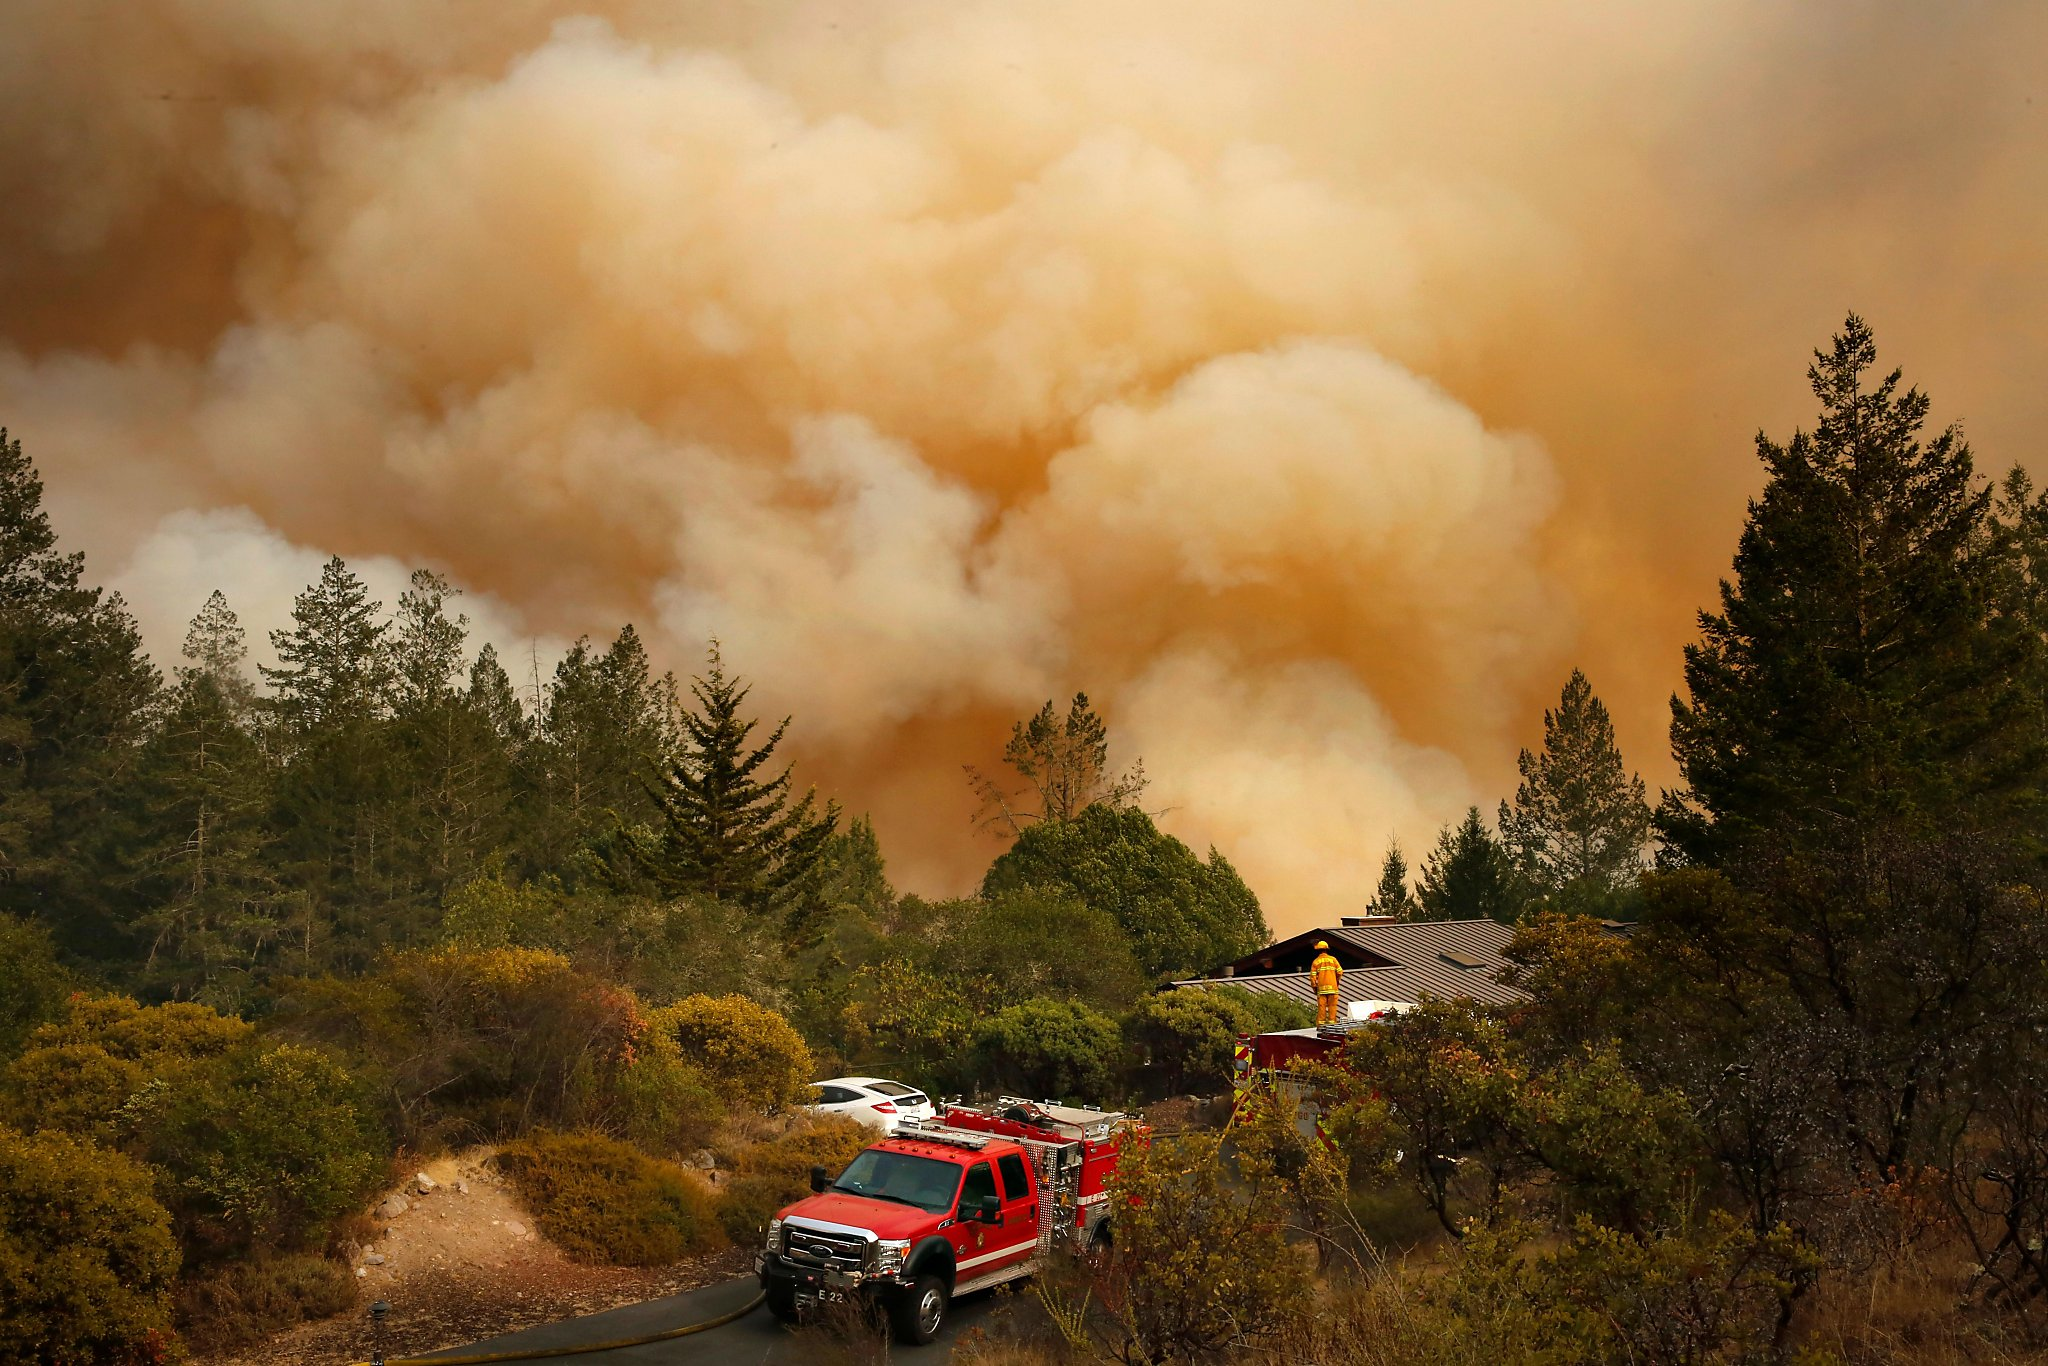 Oct. 14: Benefits, Cancellations And Events Postponed Due To Wine Country Fires photo